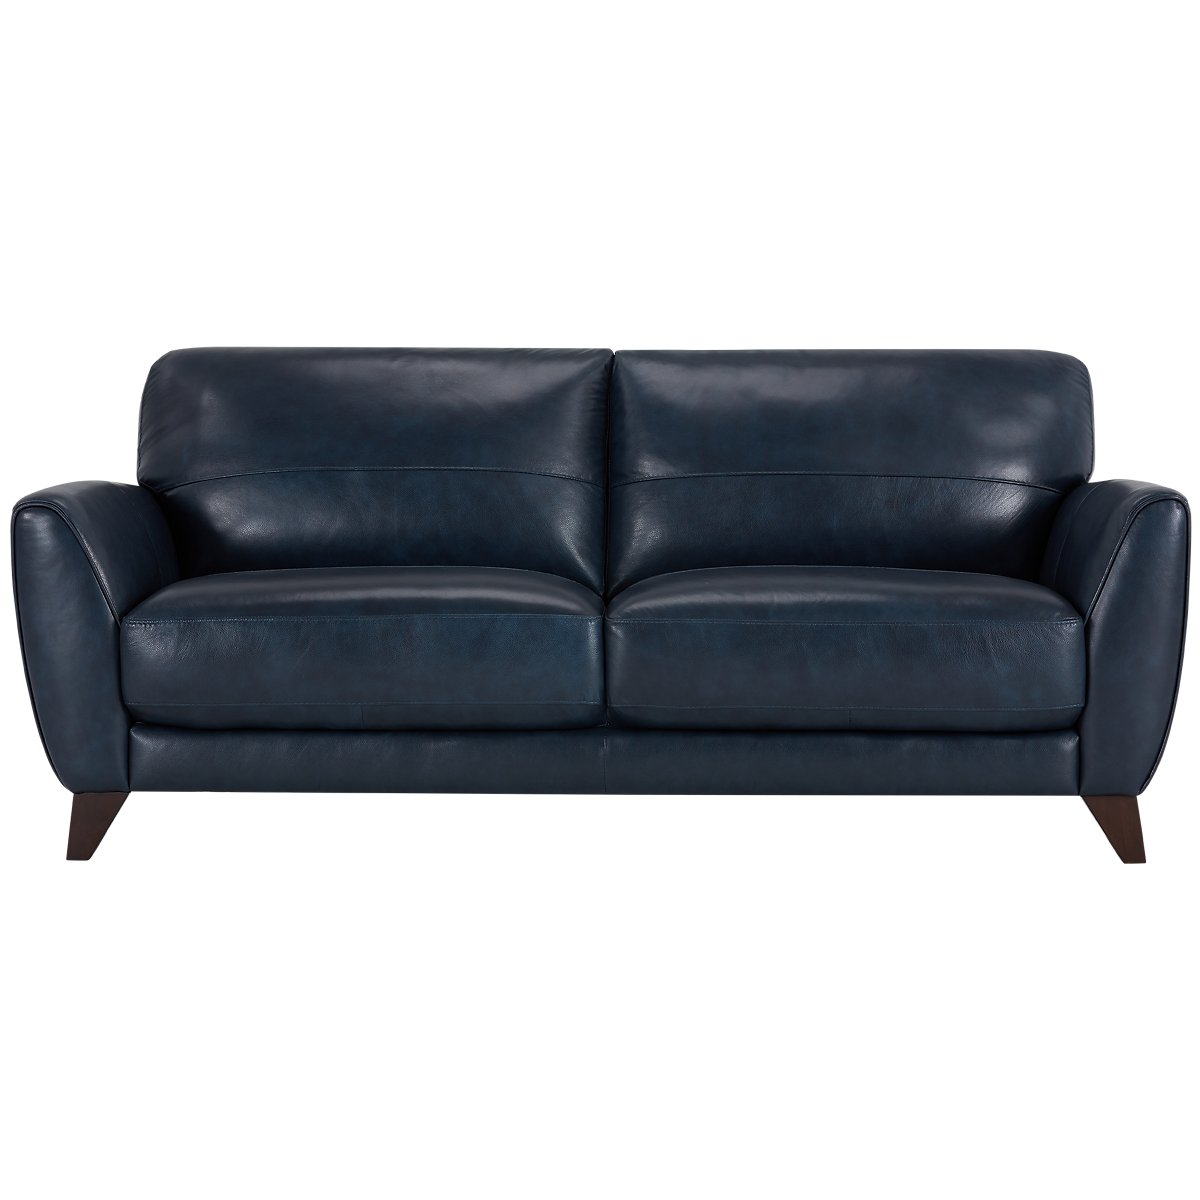 City furniture ezra dark blue leather sofa for Blue leather sofa